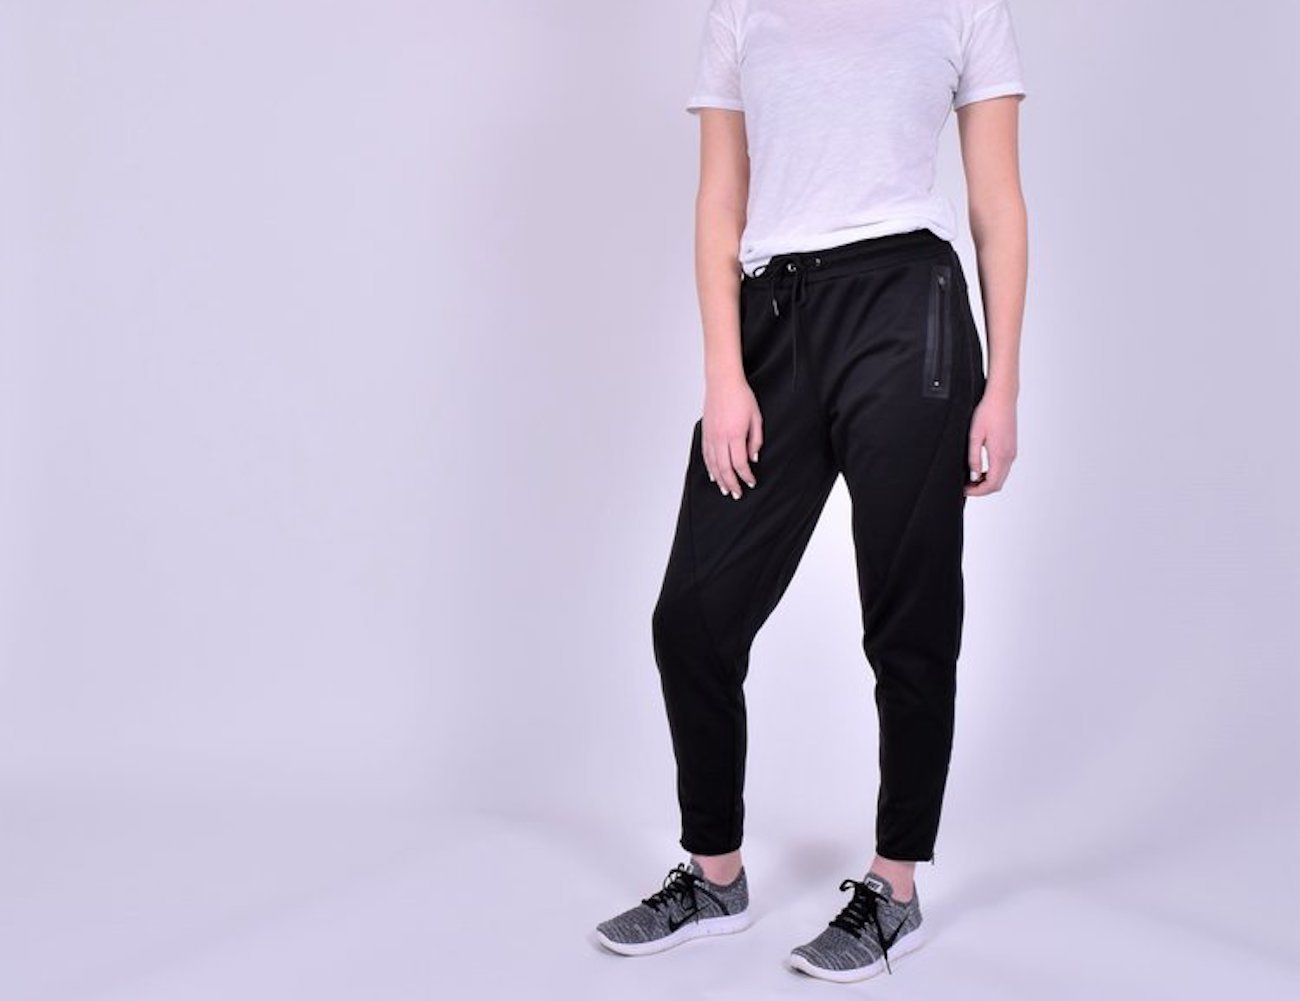 minim-all-weather-athletic-pants-4